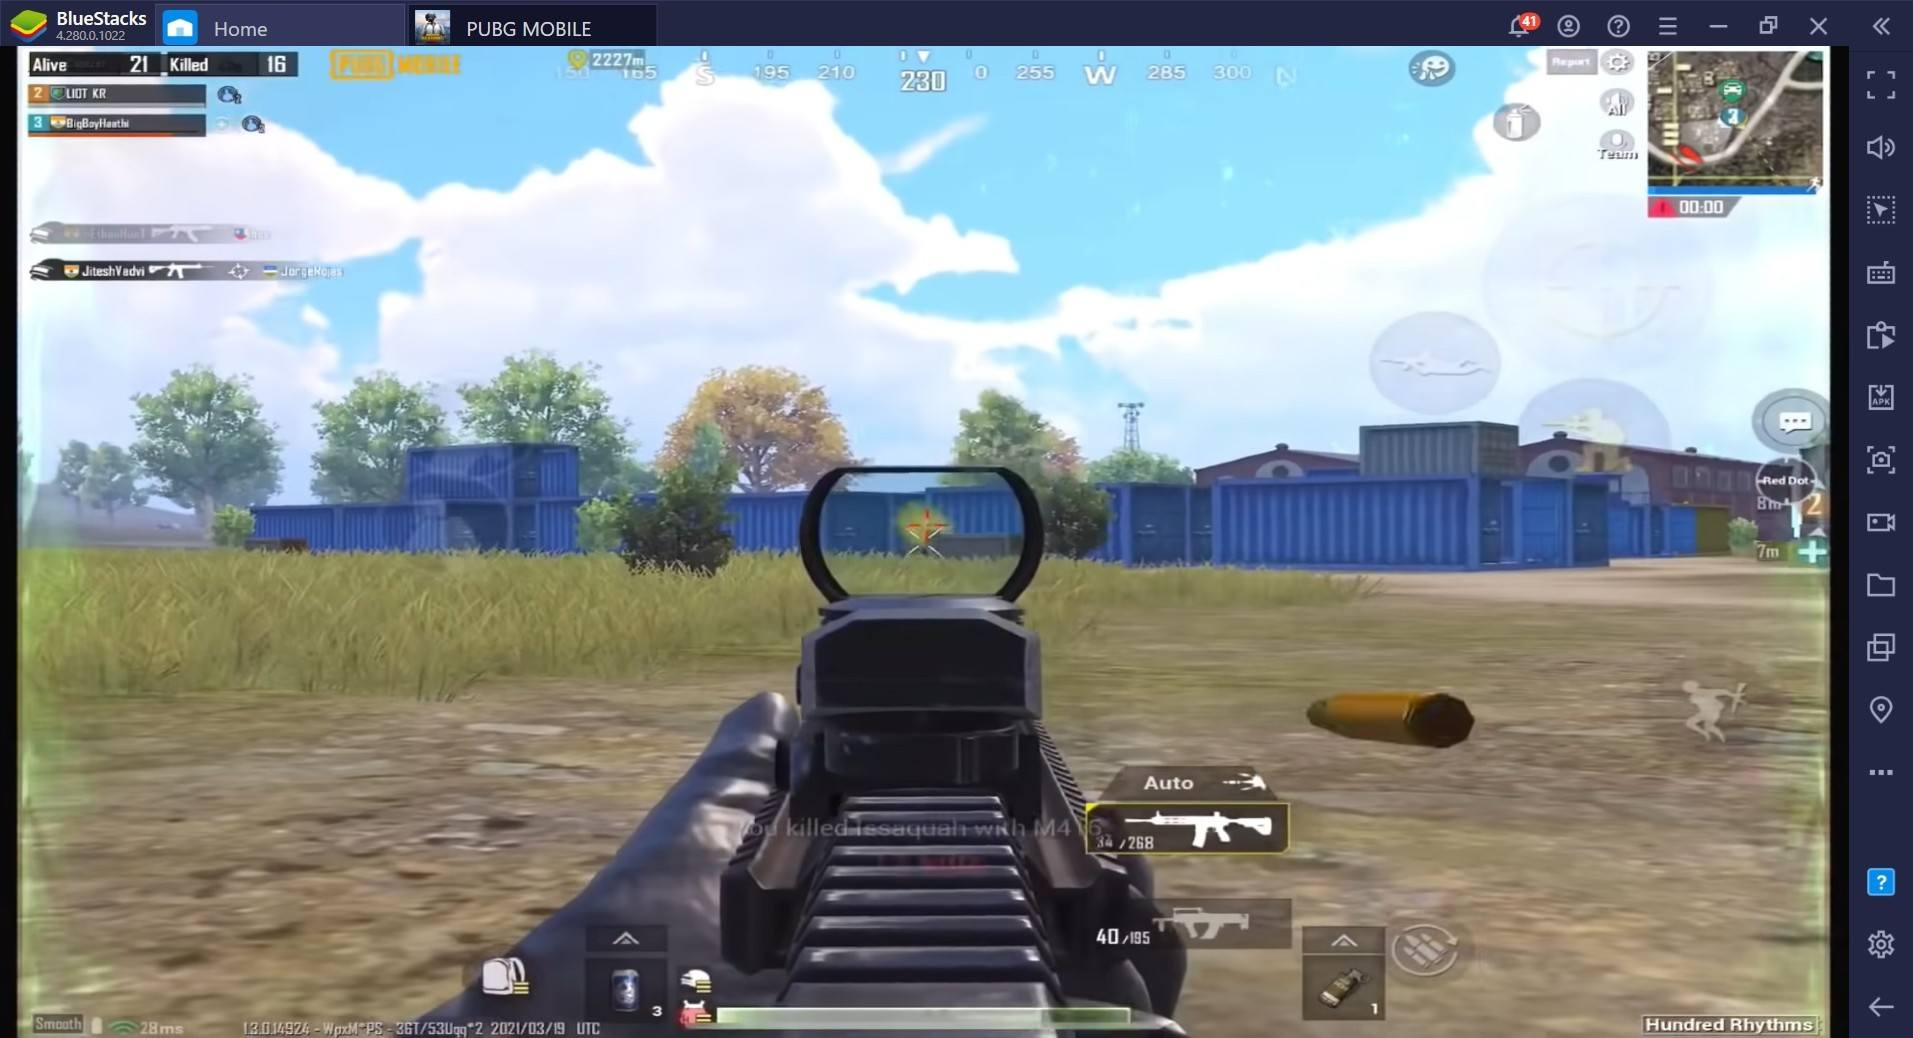 Kills On Wheels: BlueStacks Guide to Vehicles in PUBG Mobile